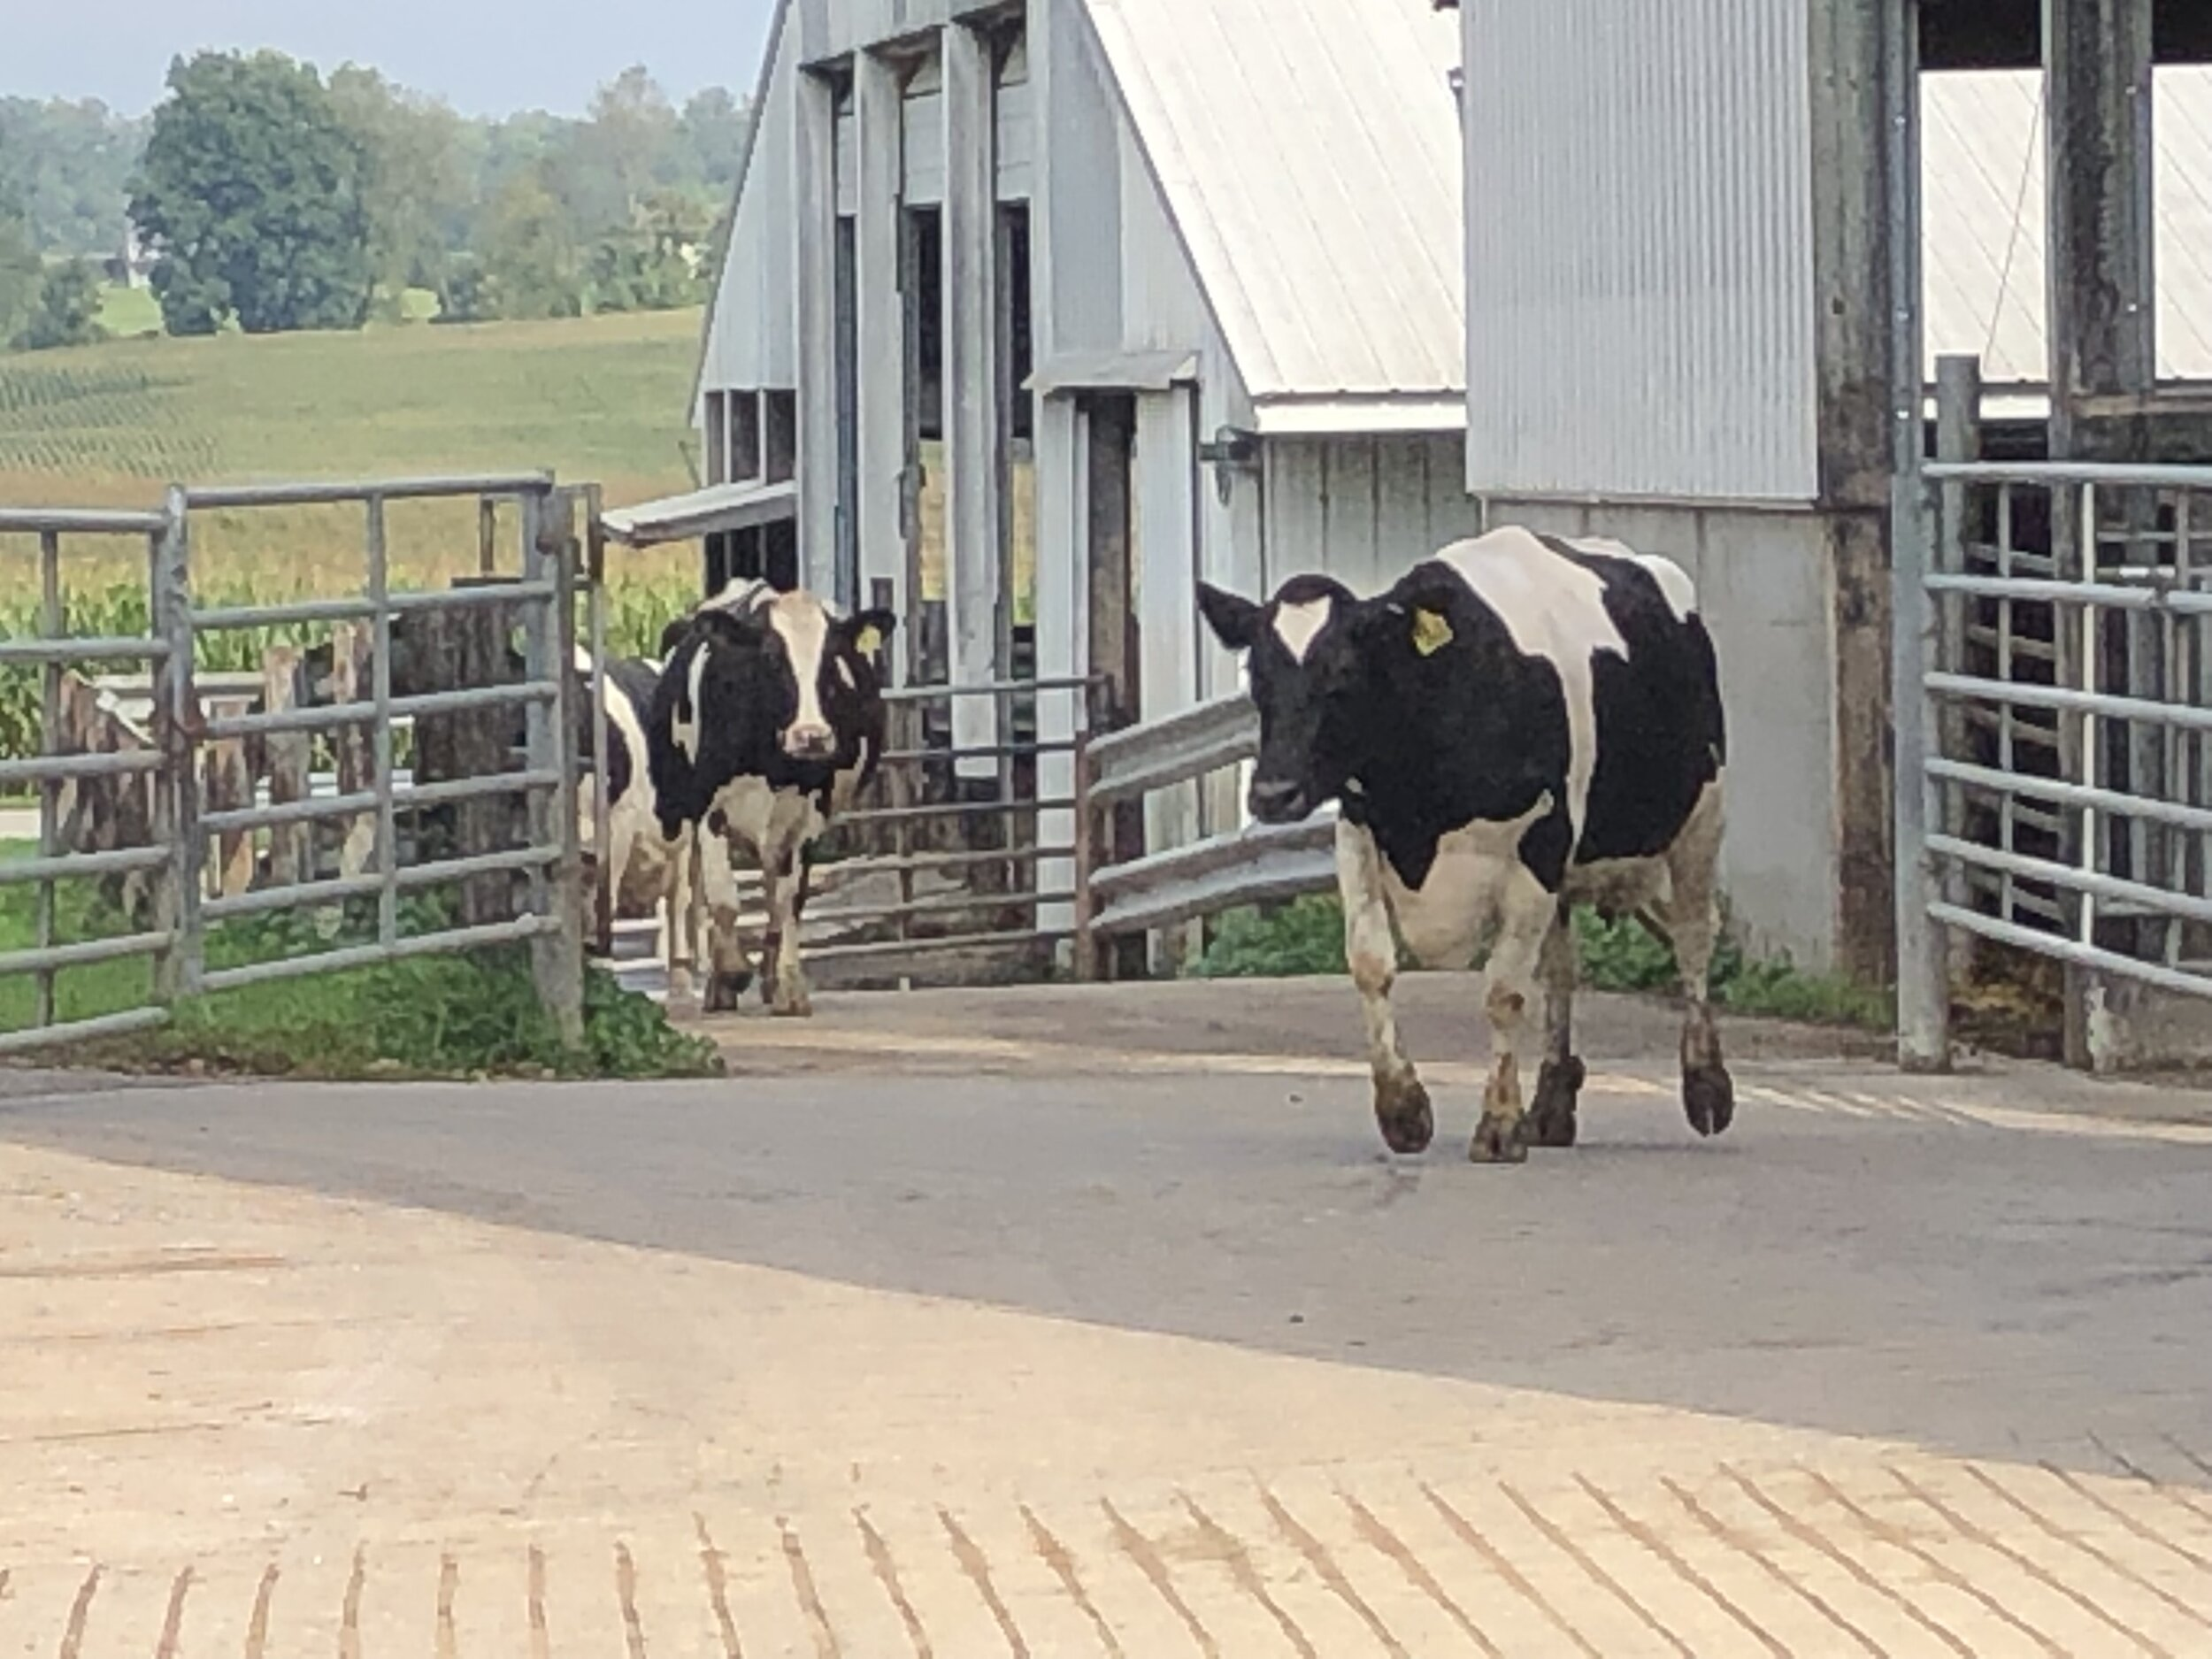 The first new cow coming up to the parlor.